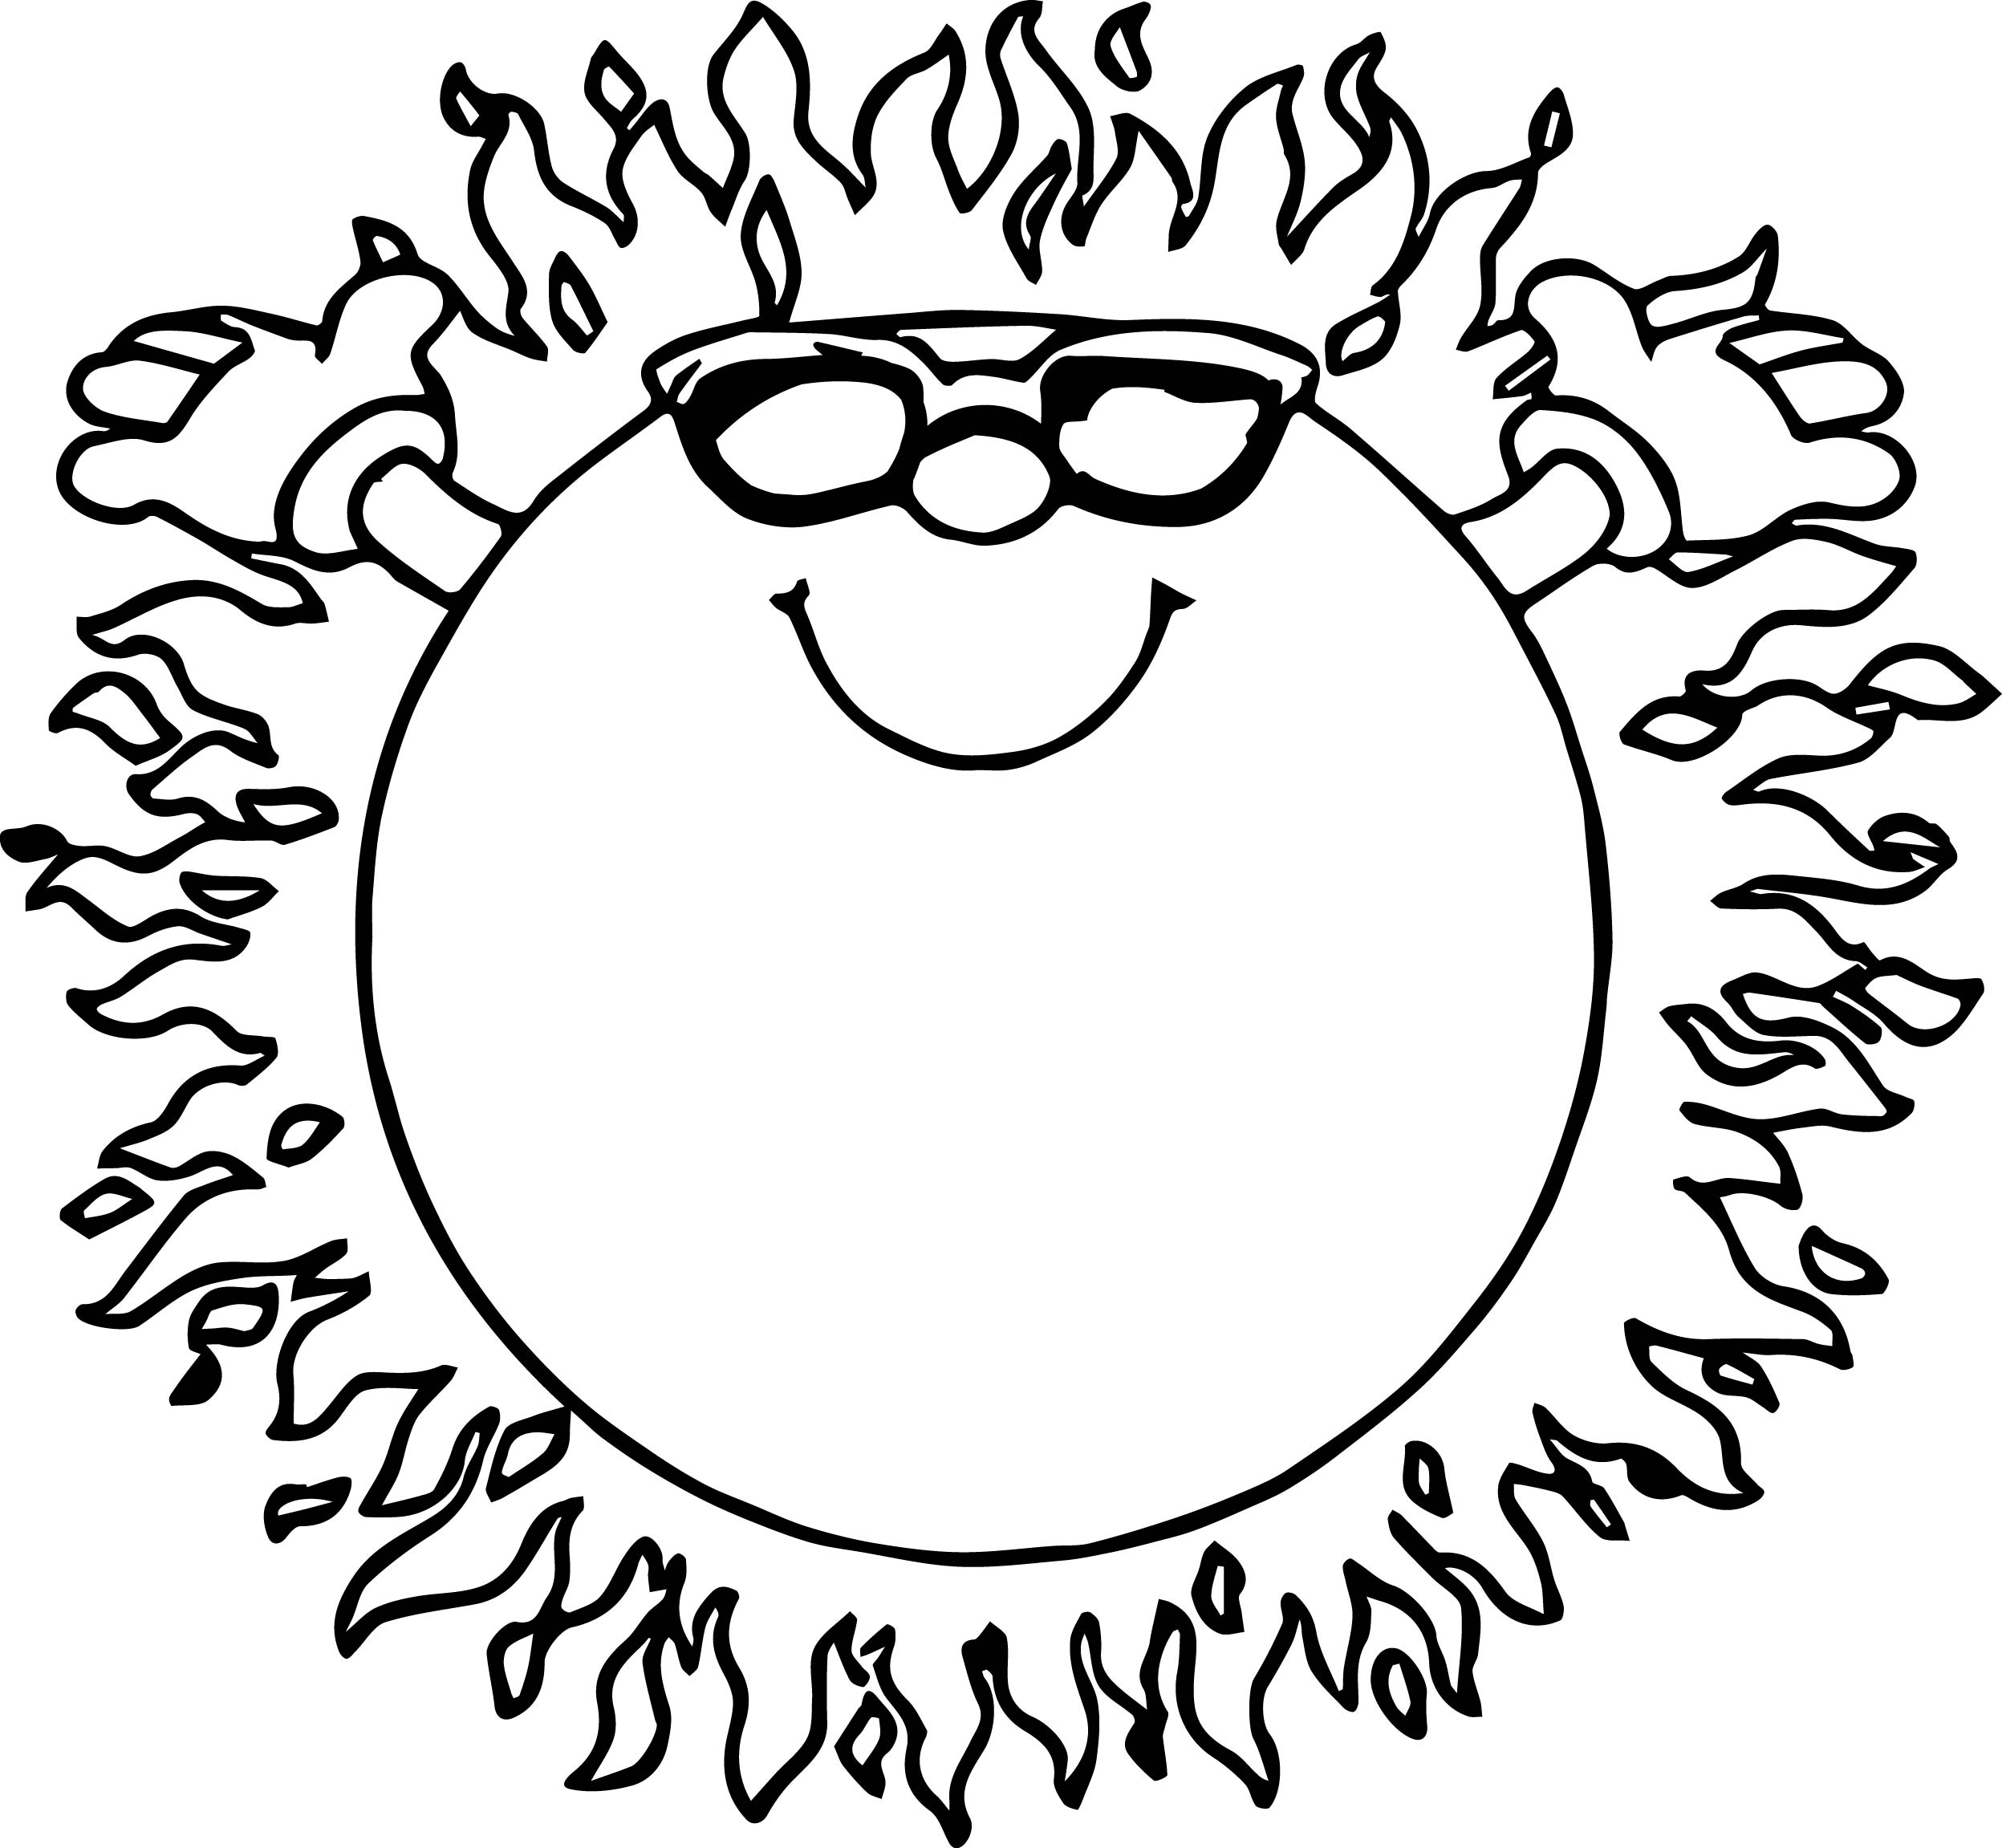 coloring pages sun - fire summer sun coloring page